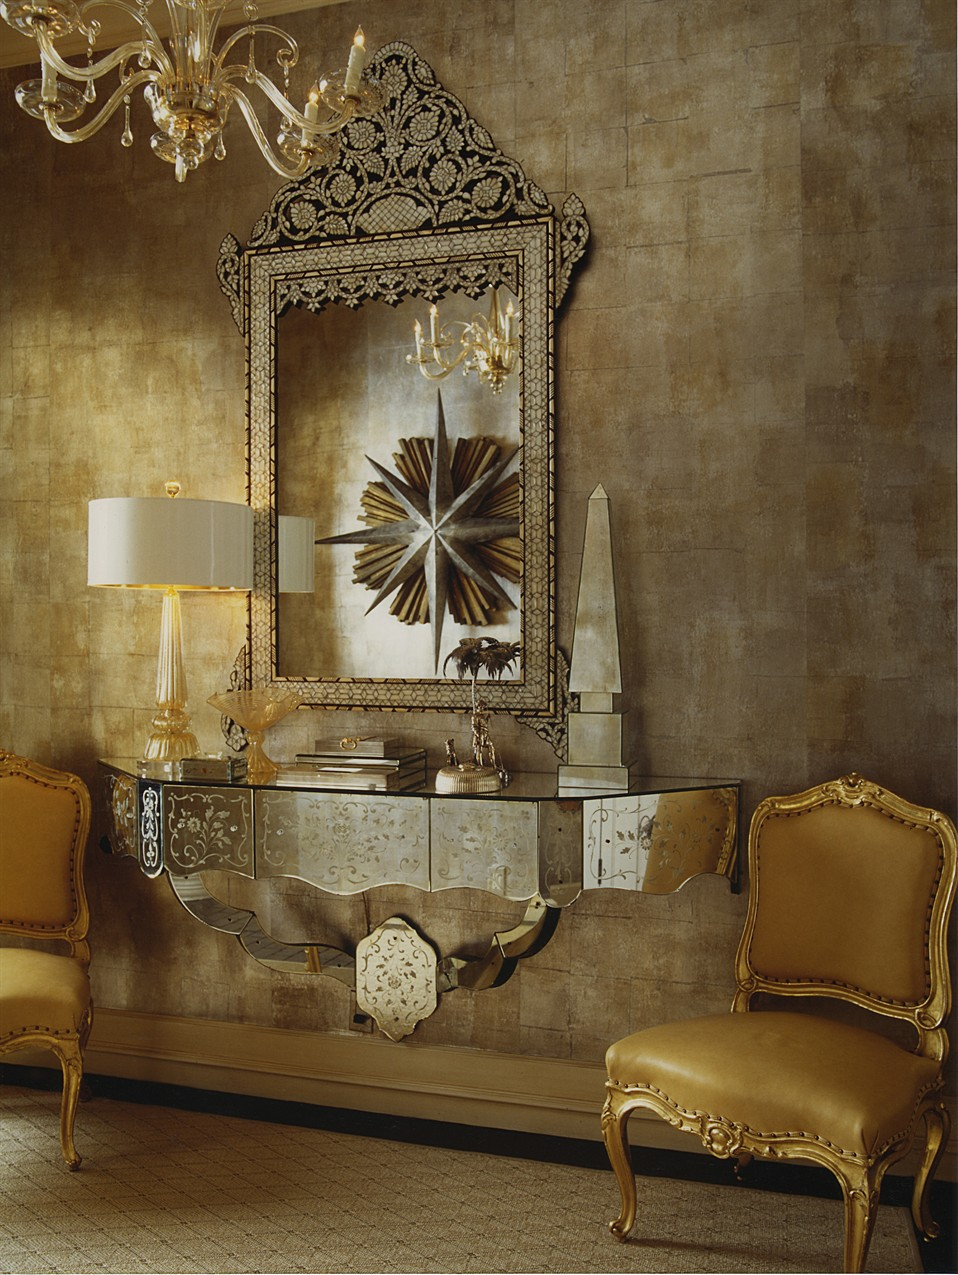 Elegant And Dramatic Entry Foyer Gets The Gilded Touch With Hand Blocked Metallized Paper Gold Covered French Chairsthe Result Is A Beautiful Layered